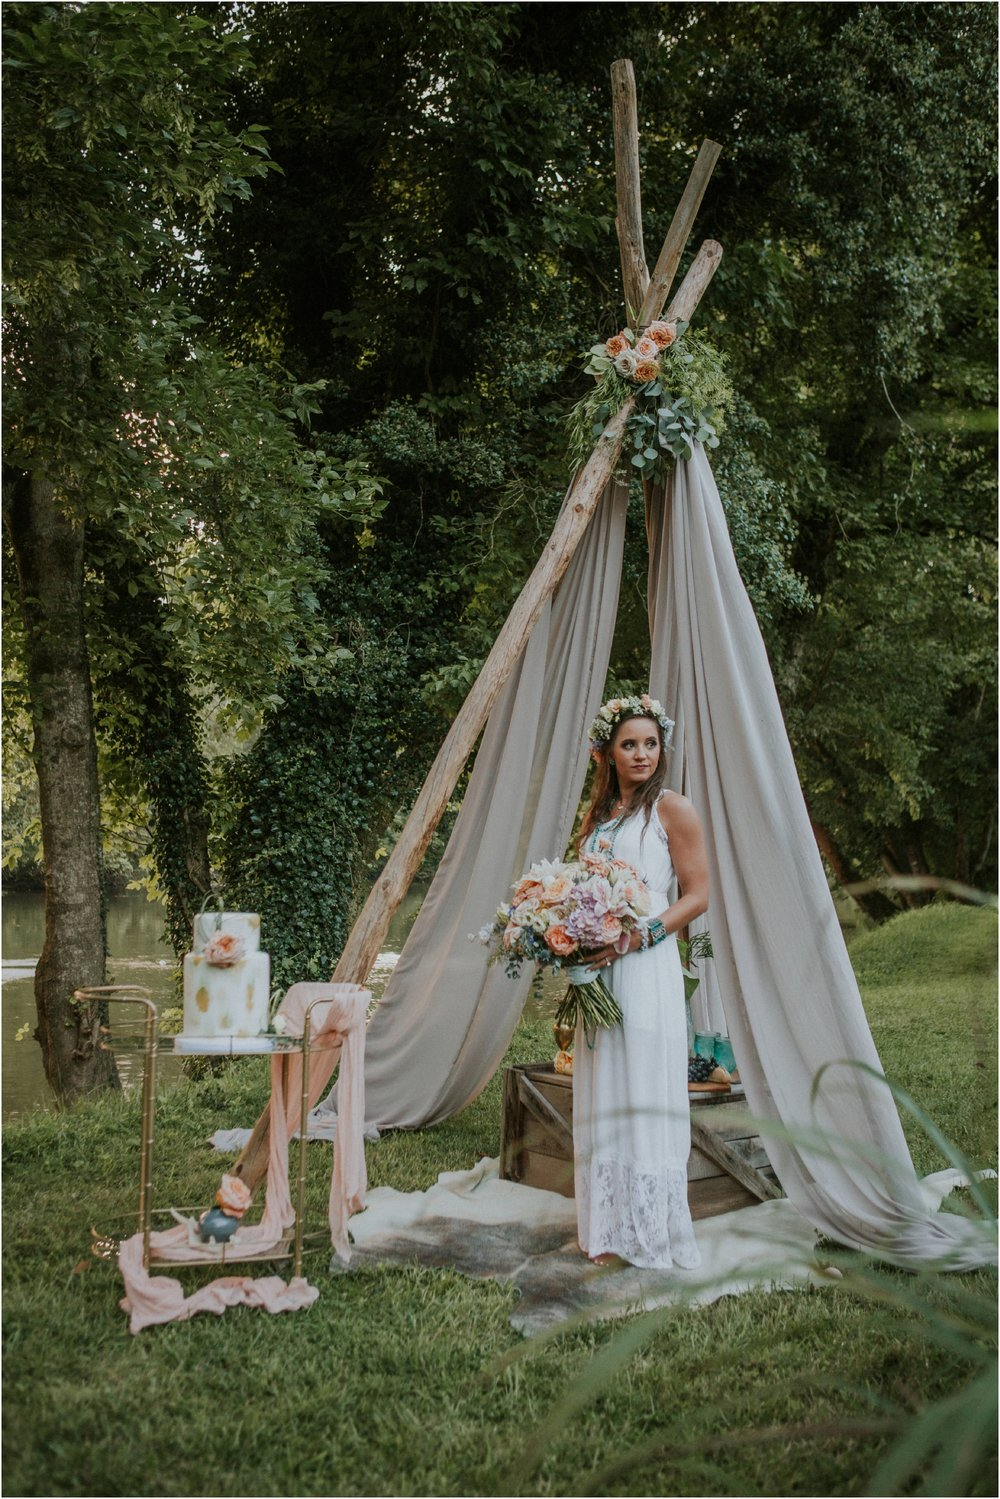 homestead-on-the-holston-hiltons-virginia-bohemian-canoe-styled-shoot-northeast-tennessee-elopement-wild-free-spirit_0051.jpg